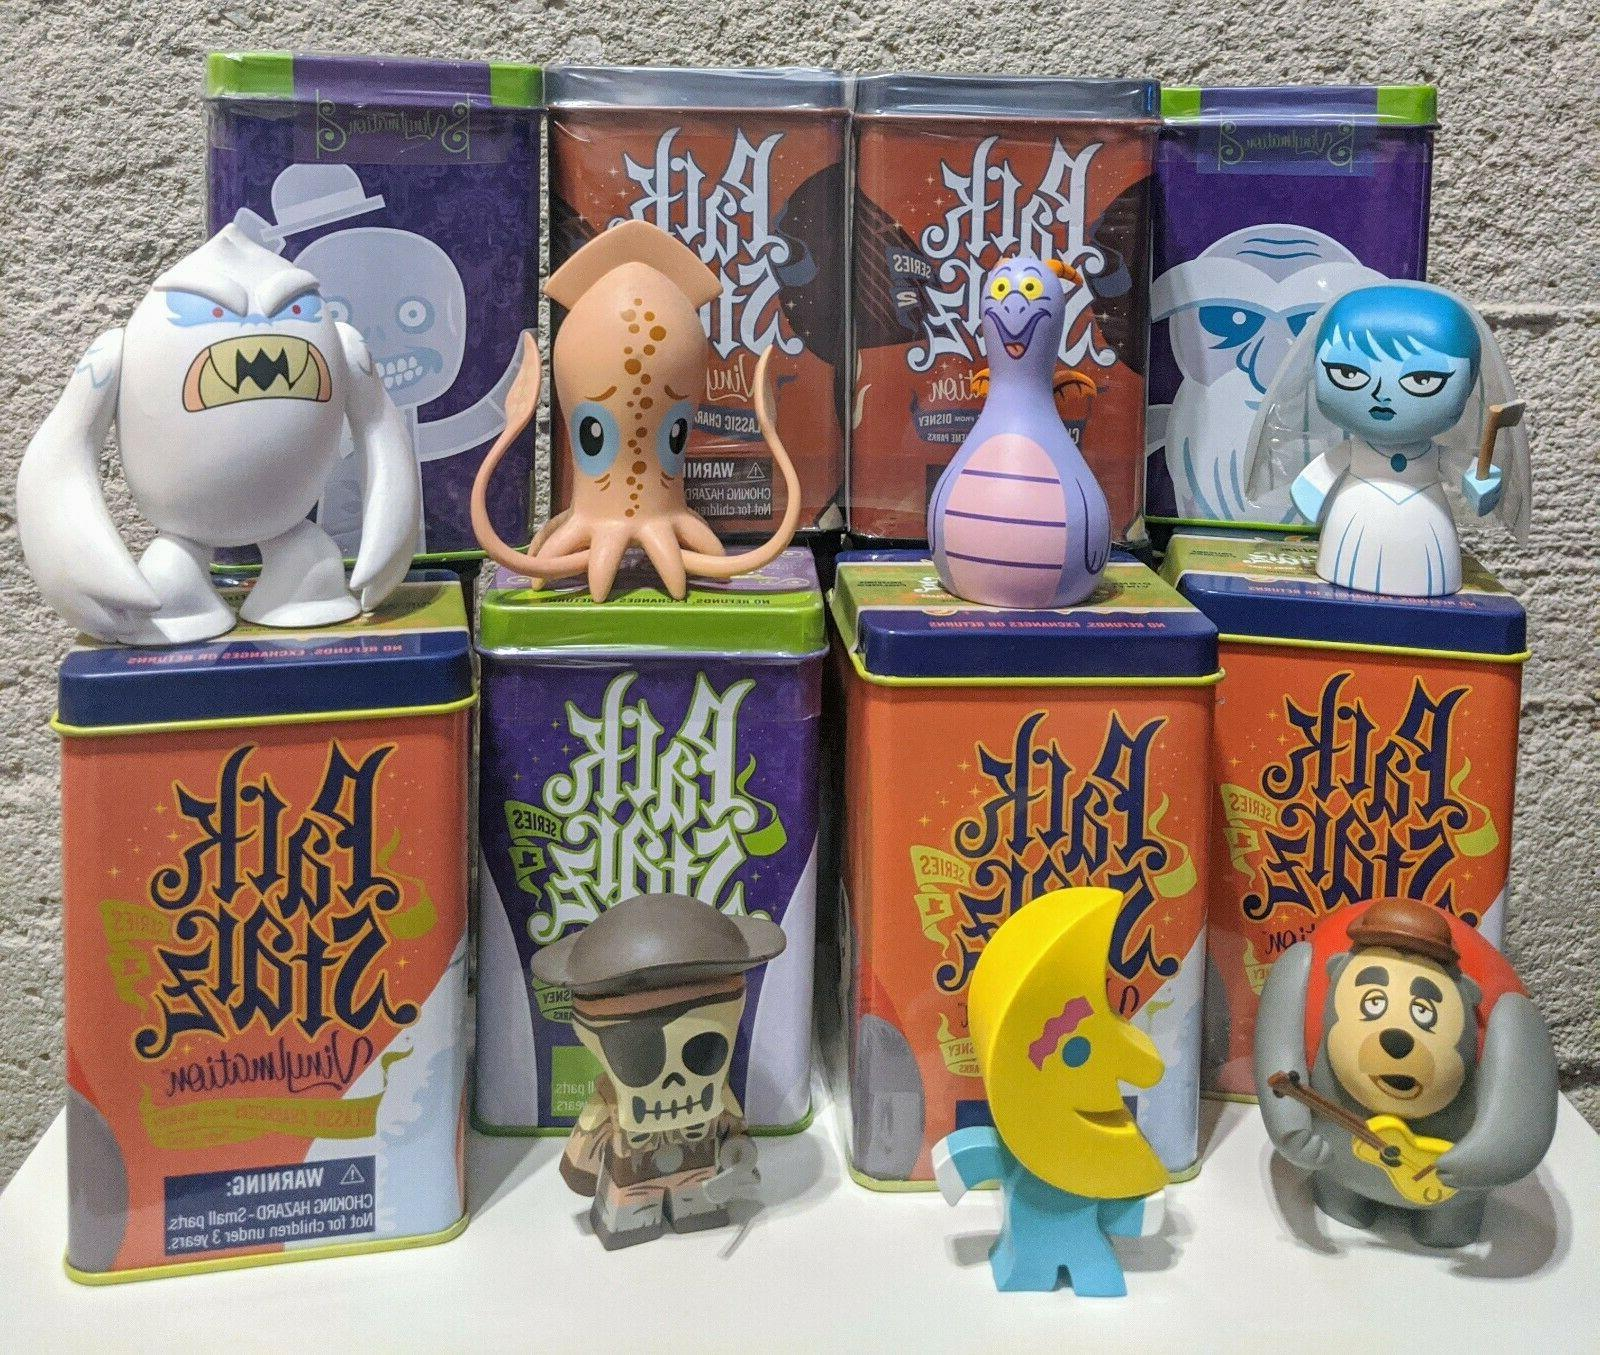 park starz vinylmation series 1 and 2